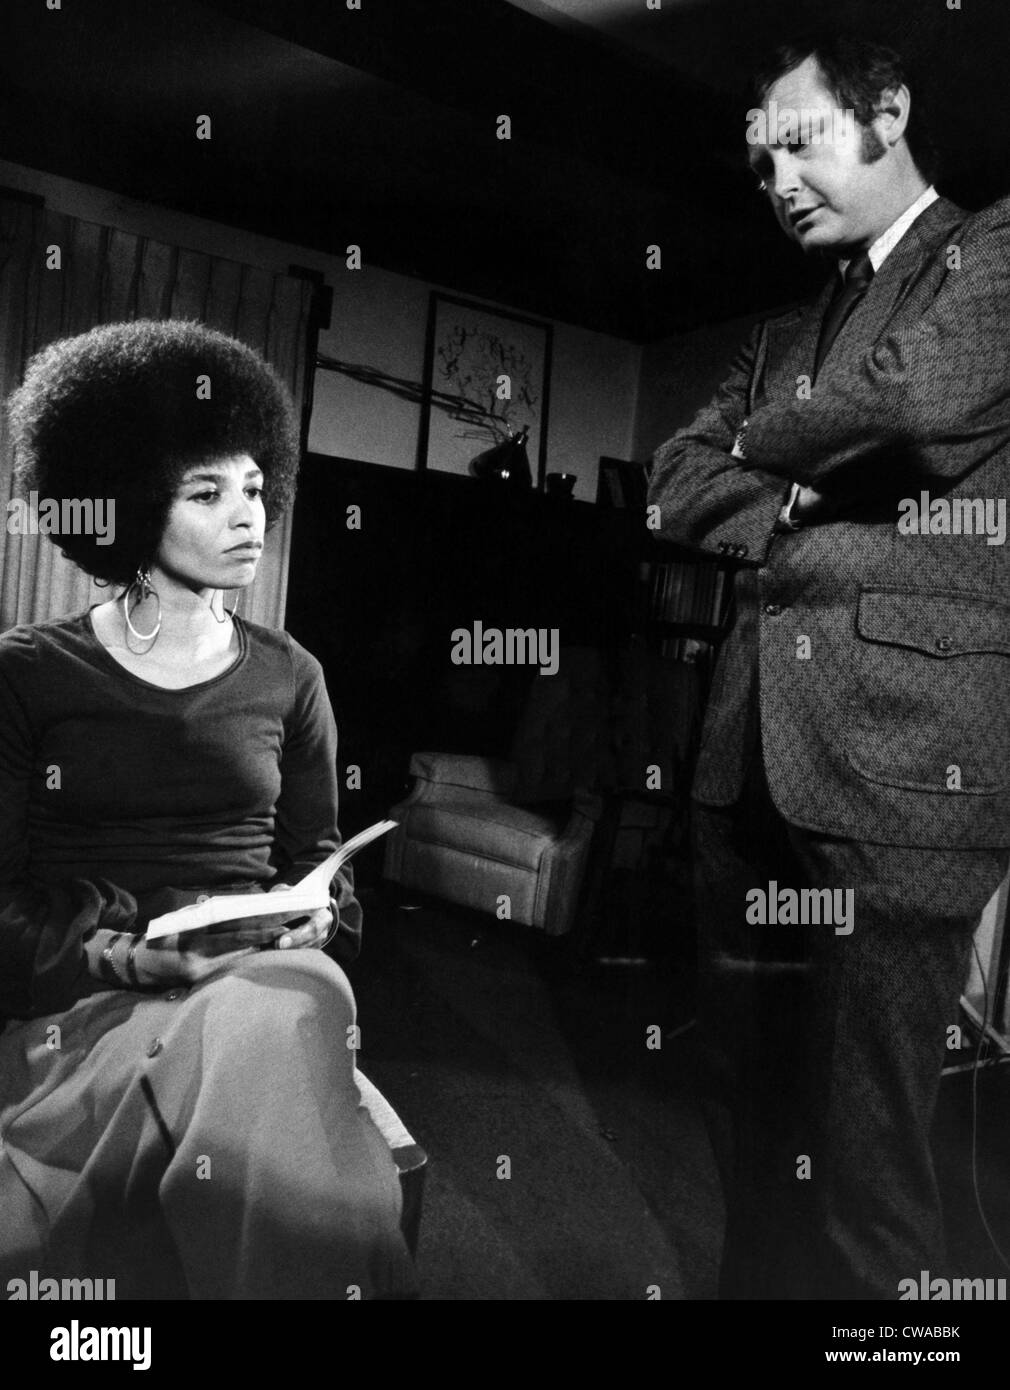 Don Oliver interviews Angela Davis for an NBC special, 1972. Courtesy: CSU Archives/Everett Collection - Stock Image